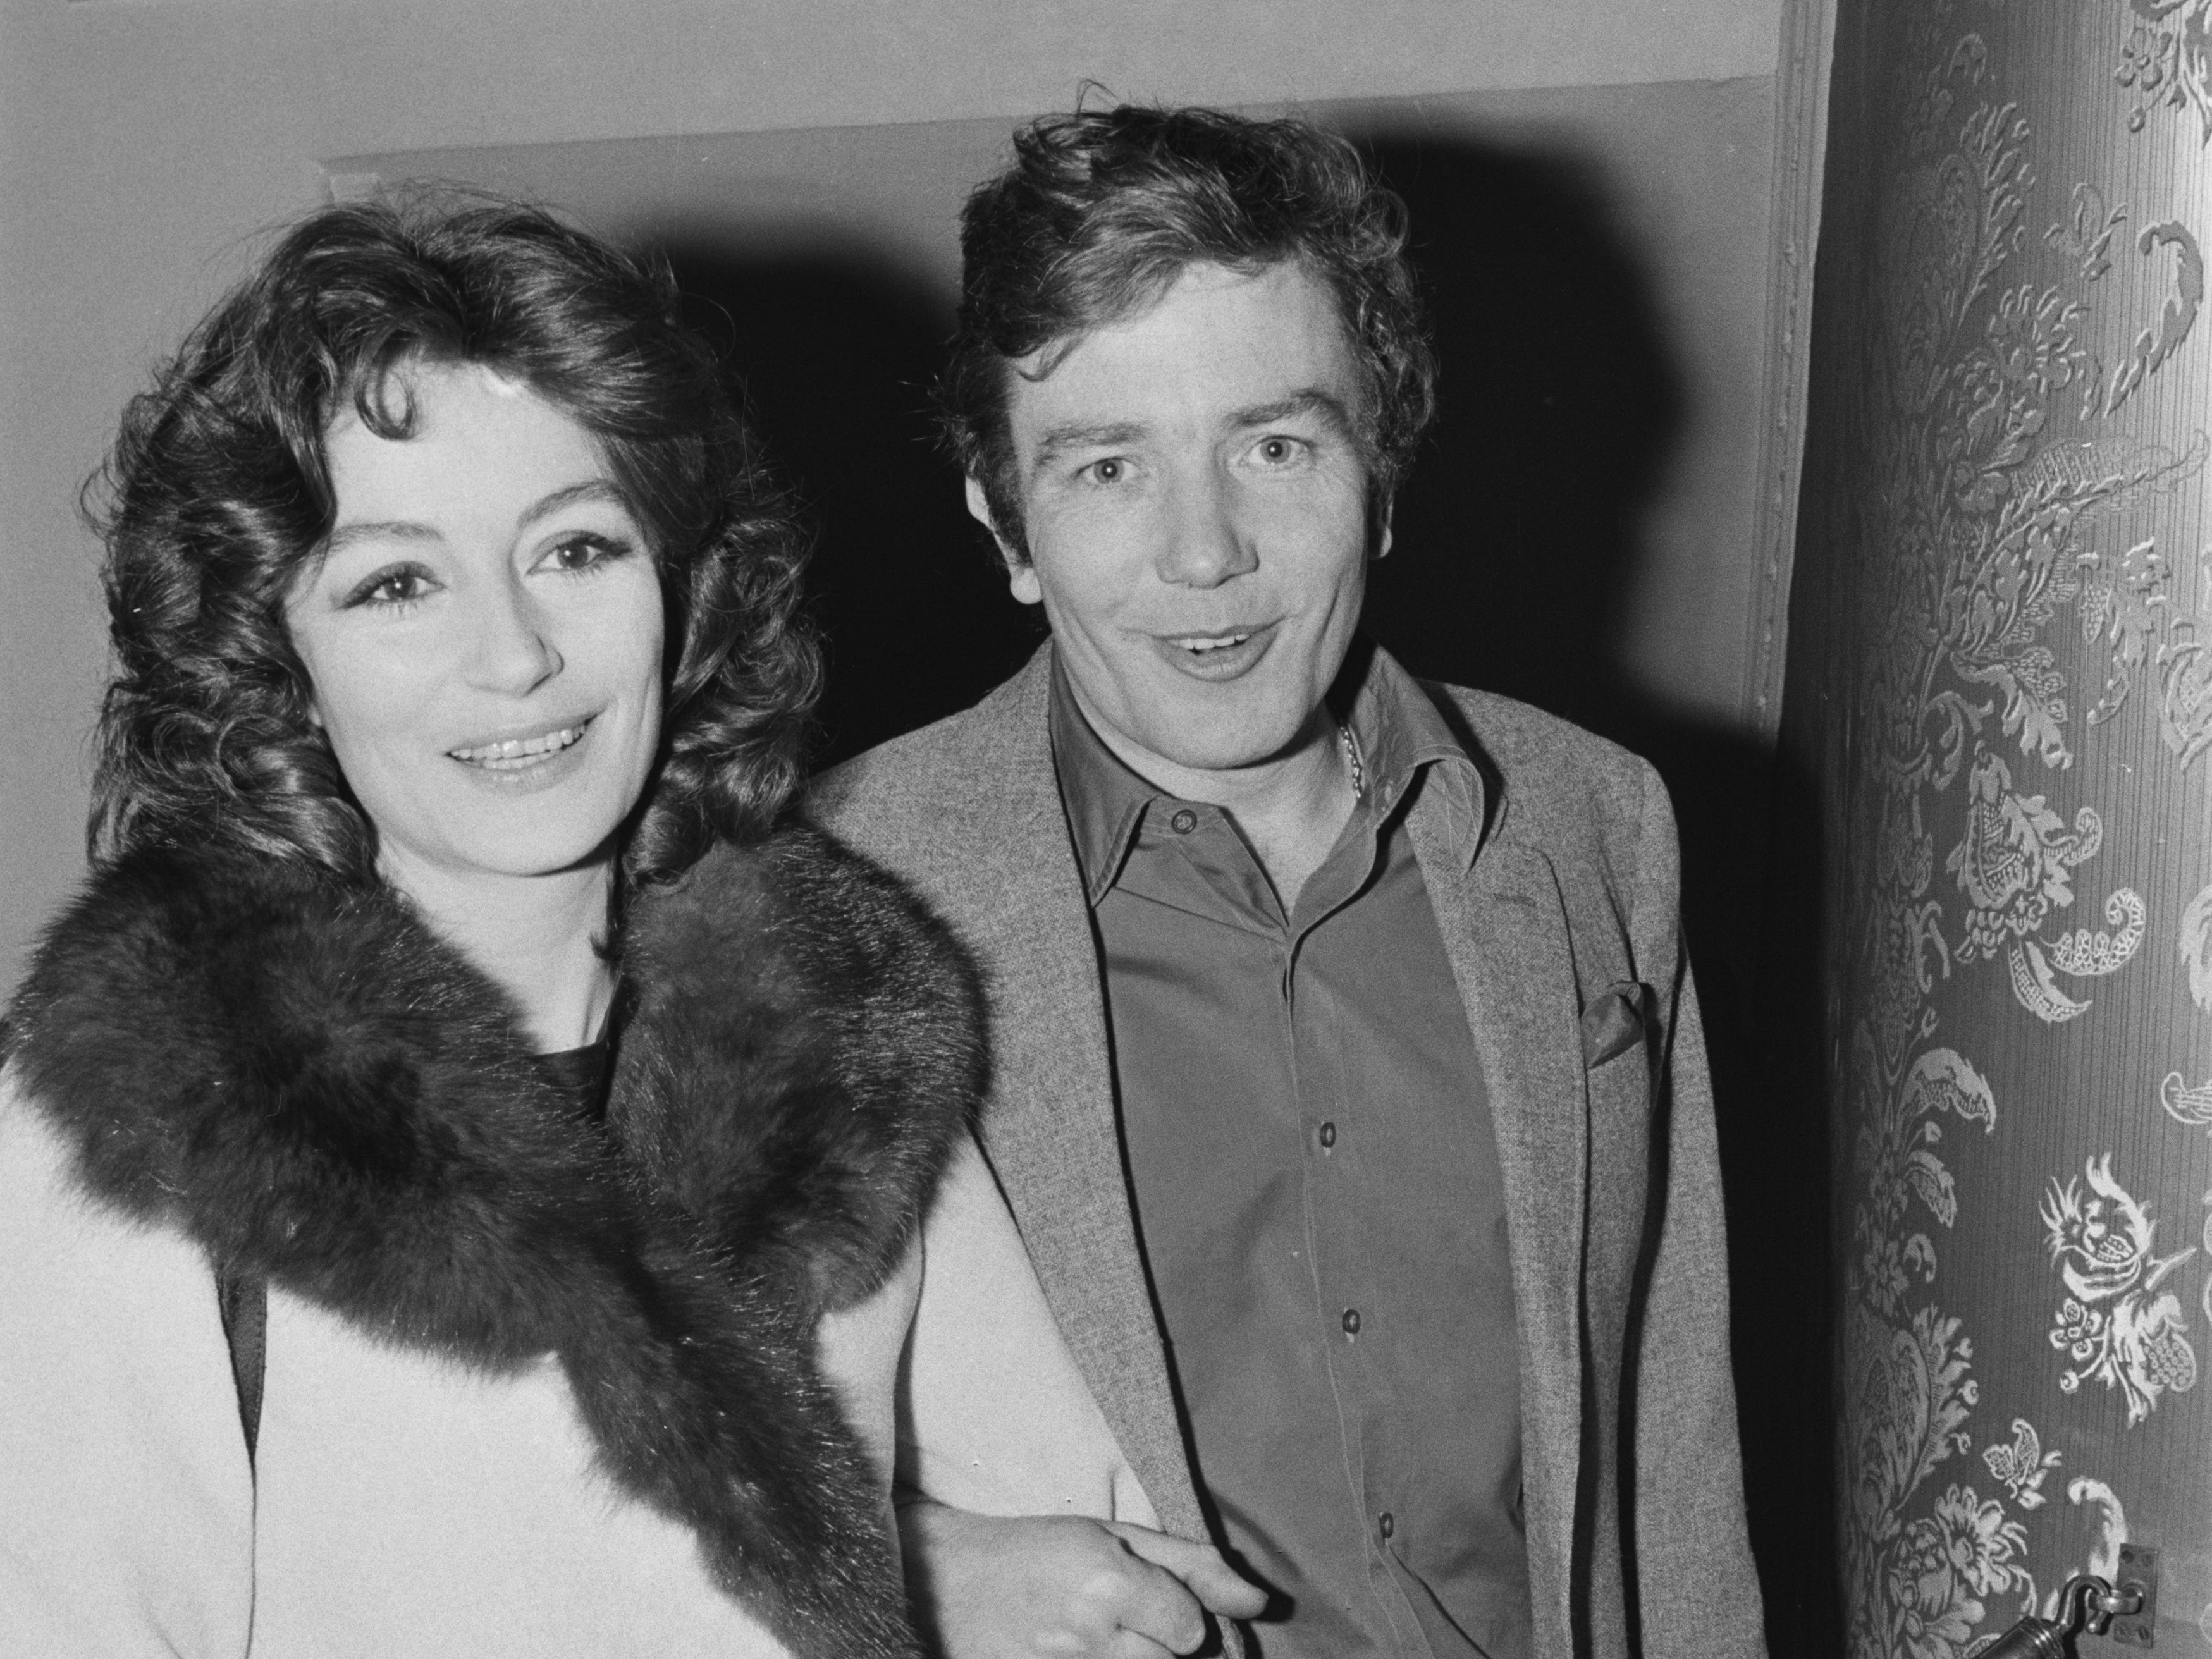 Albert Finney and his wife, French actress Anouk Aimée at the Apollo Theatre in London, 24th April 1971.